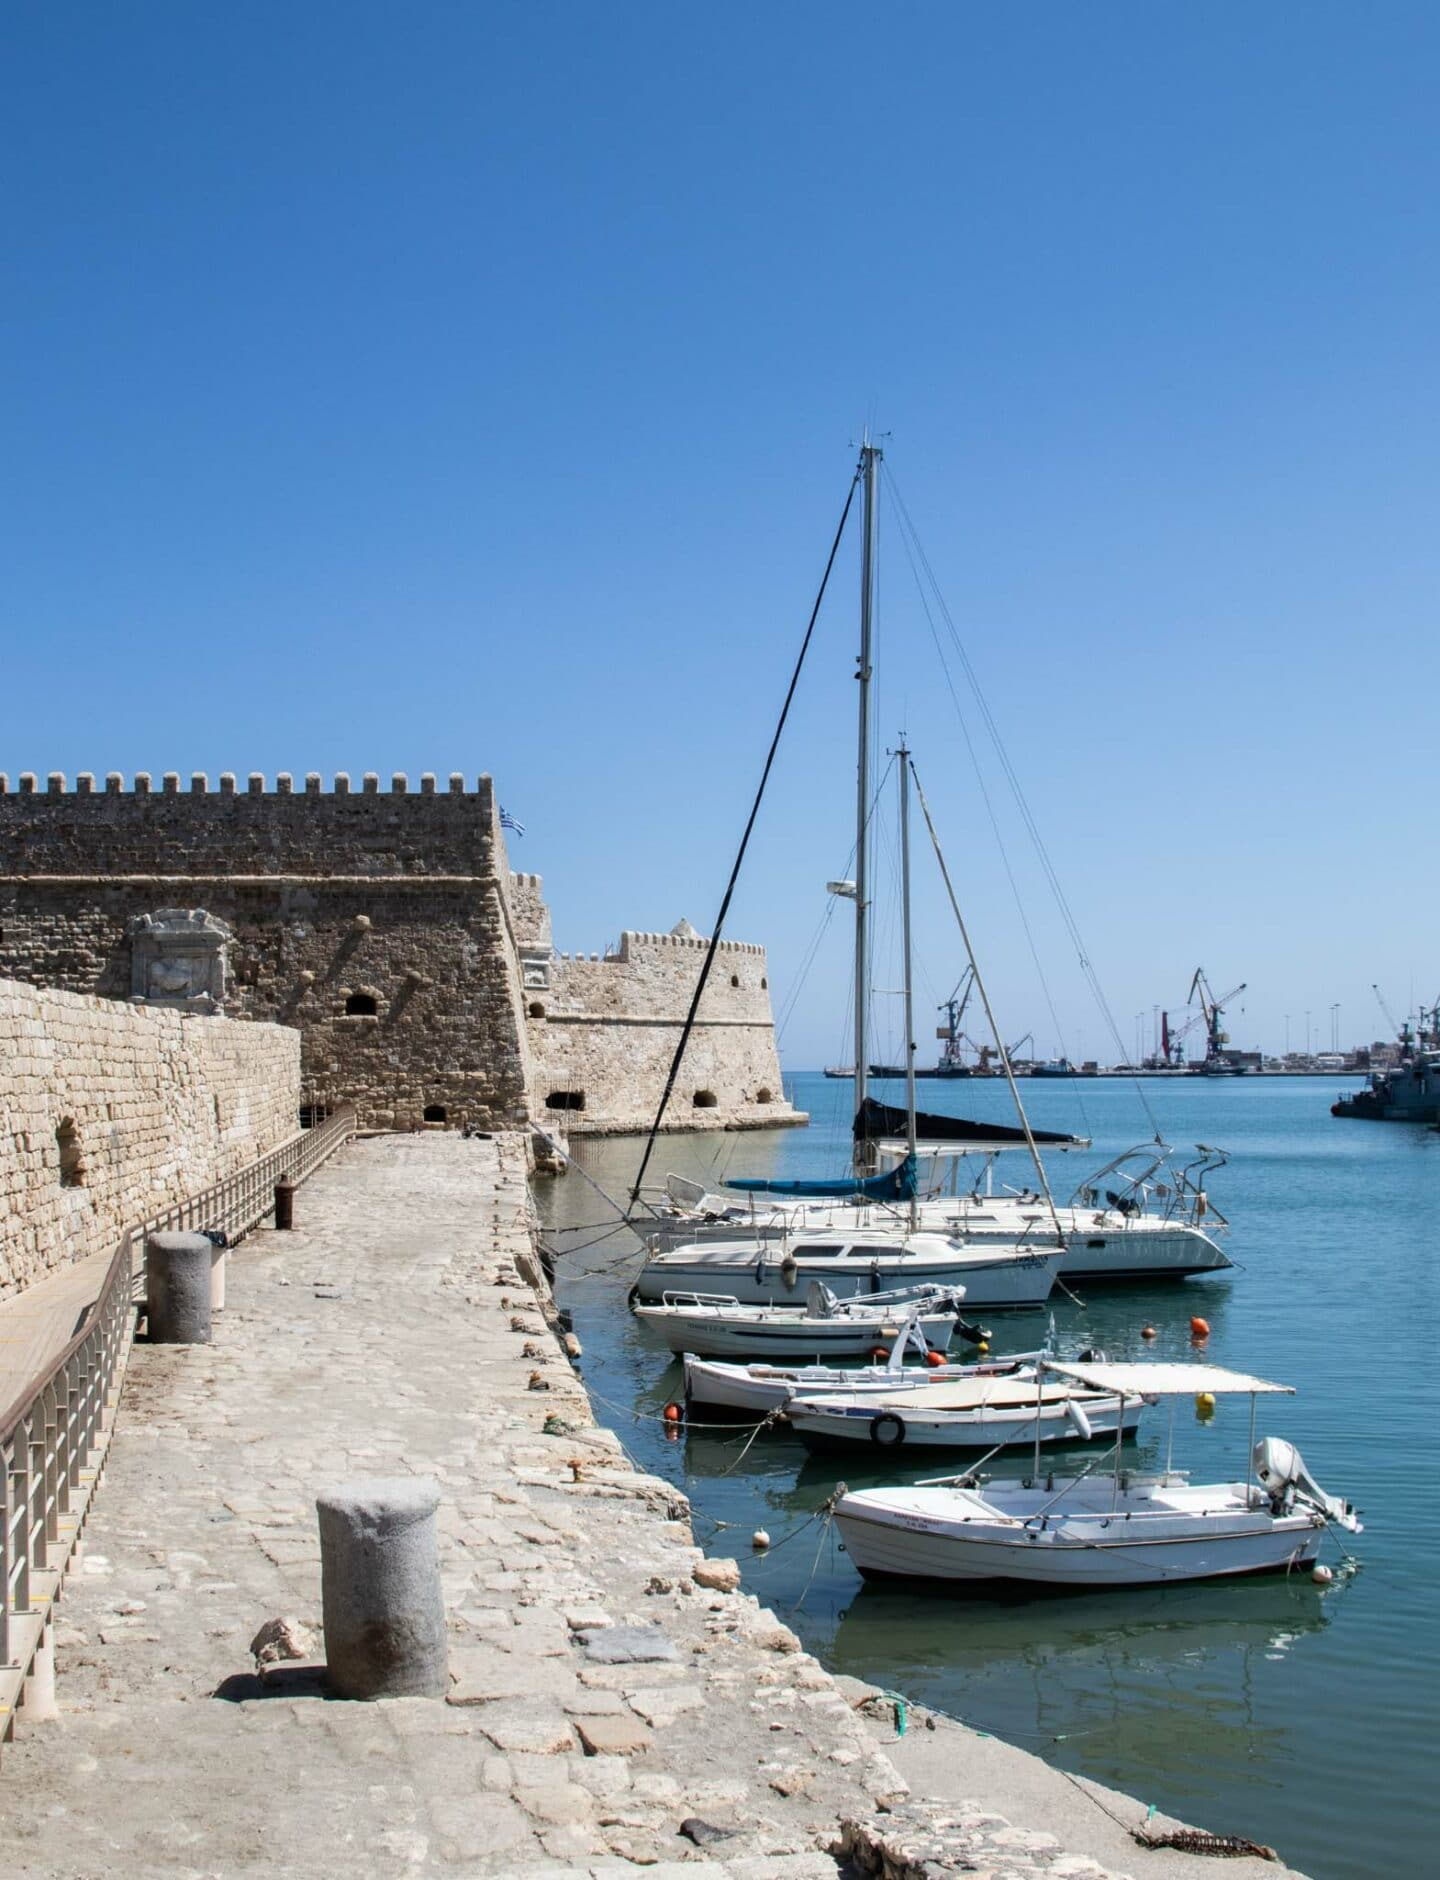 The Koules fortress guards Heraklion from sea attack. It's a fortification on a short pier. There are yachts and fishing boats inside the harbour created by the fortifications.